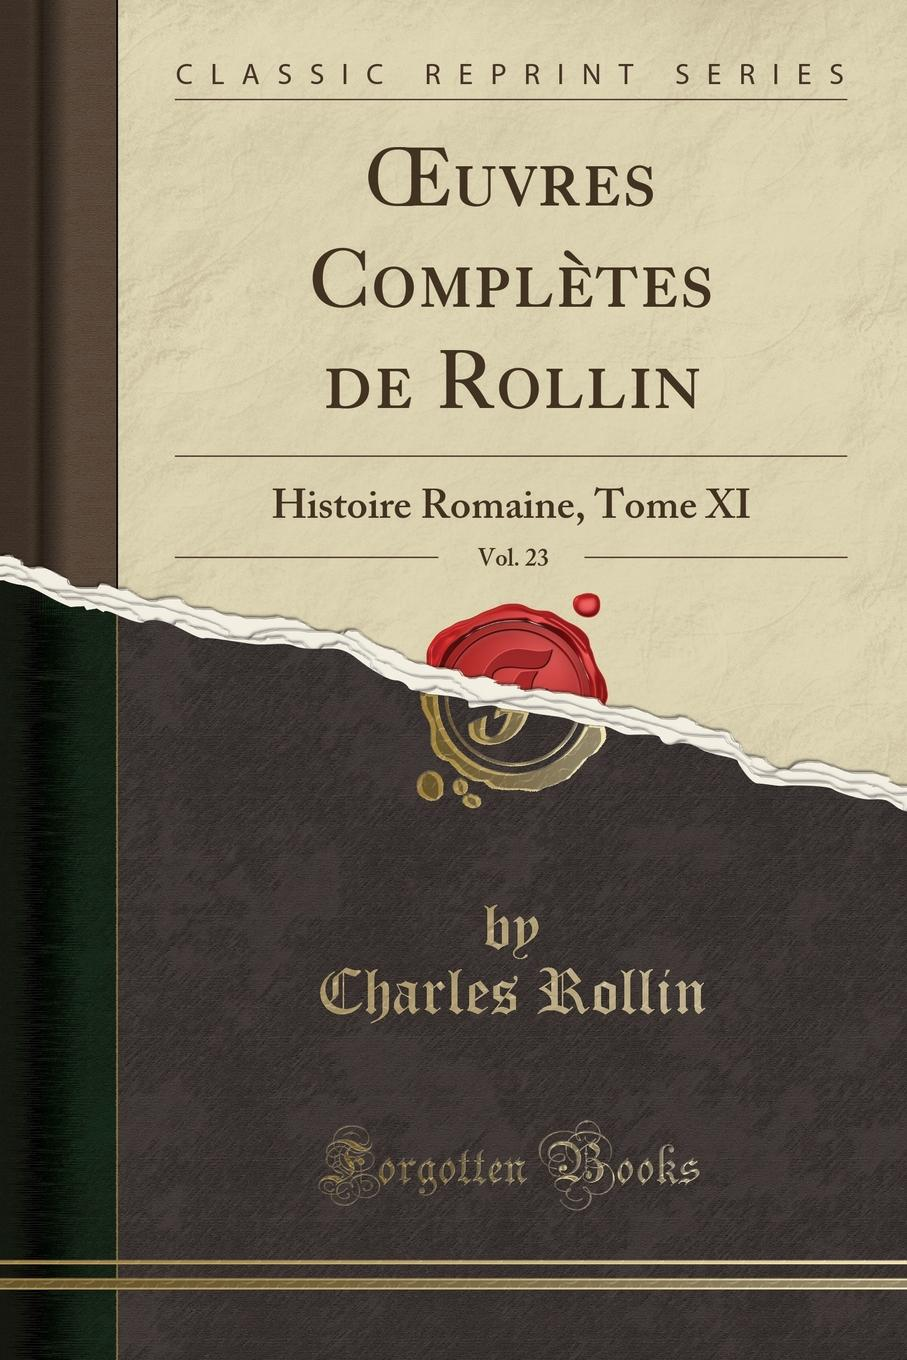 Charles Rollin OEuvres Completes de Rollin, Vol. 23. Histoire Romaine, Tome XI (Classic Reprint)